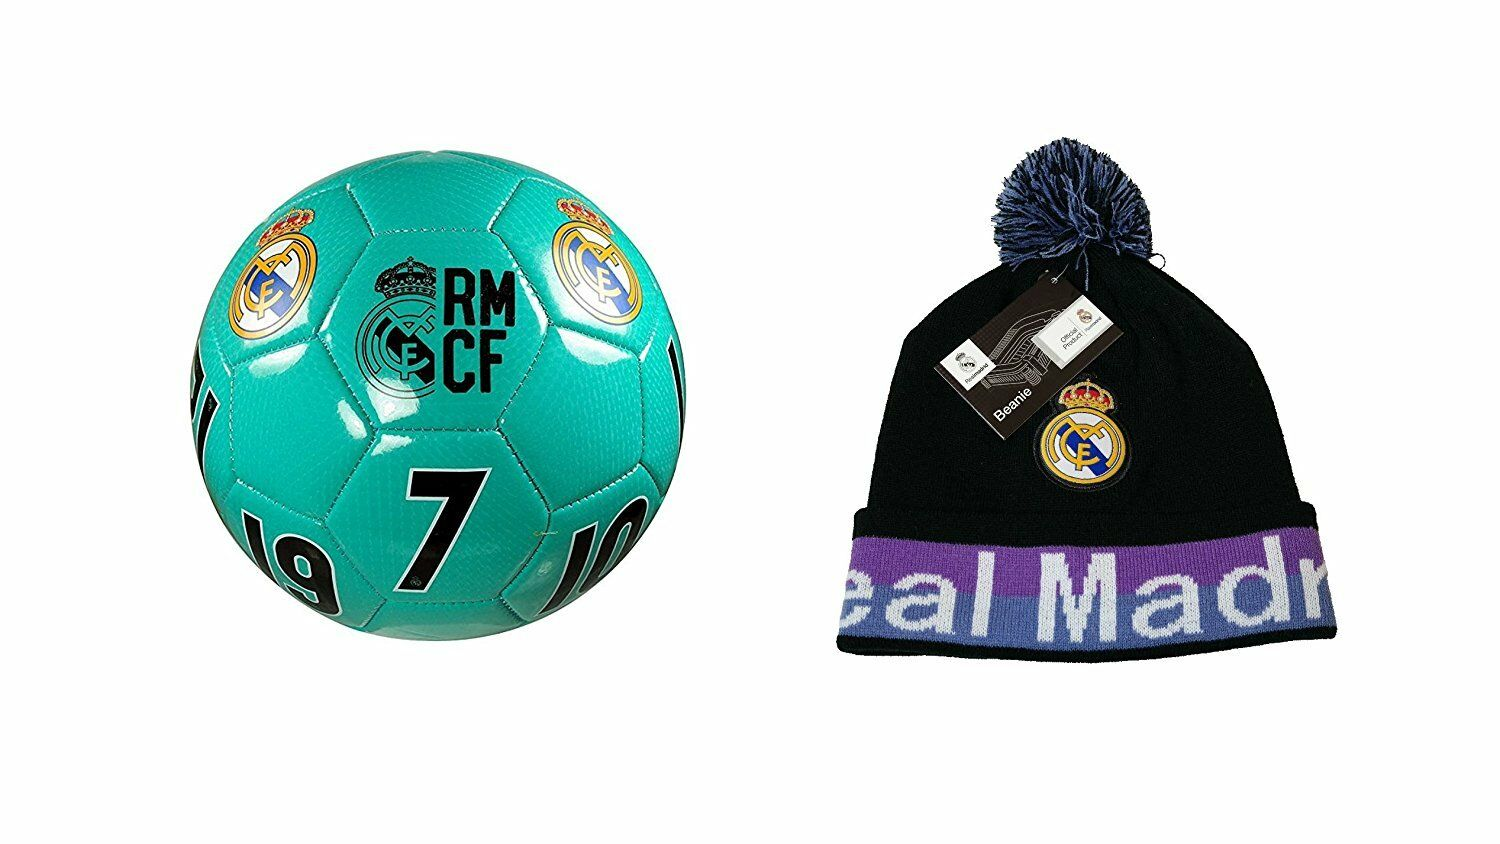 Real Madrid C.F. Official Soccer Size 4 Ball & Beanie Combo 09-1